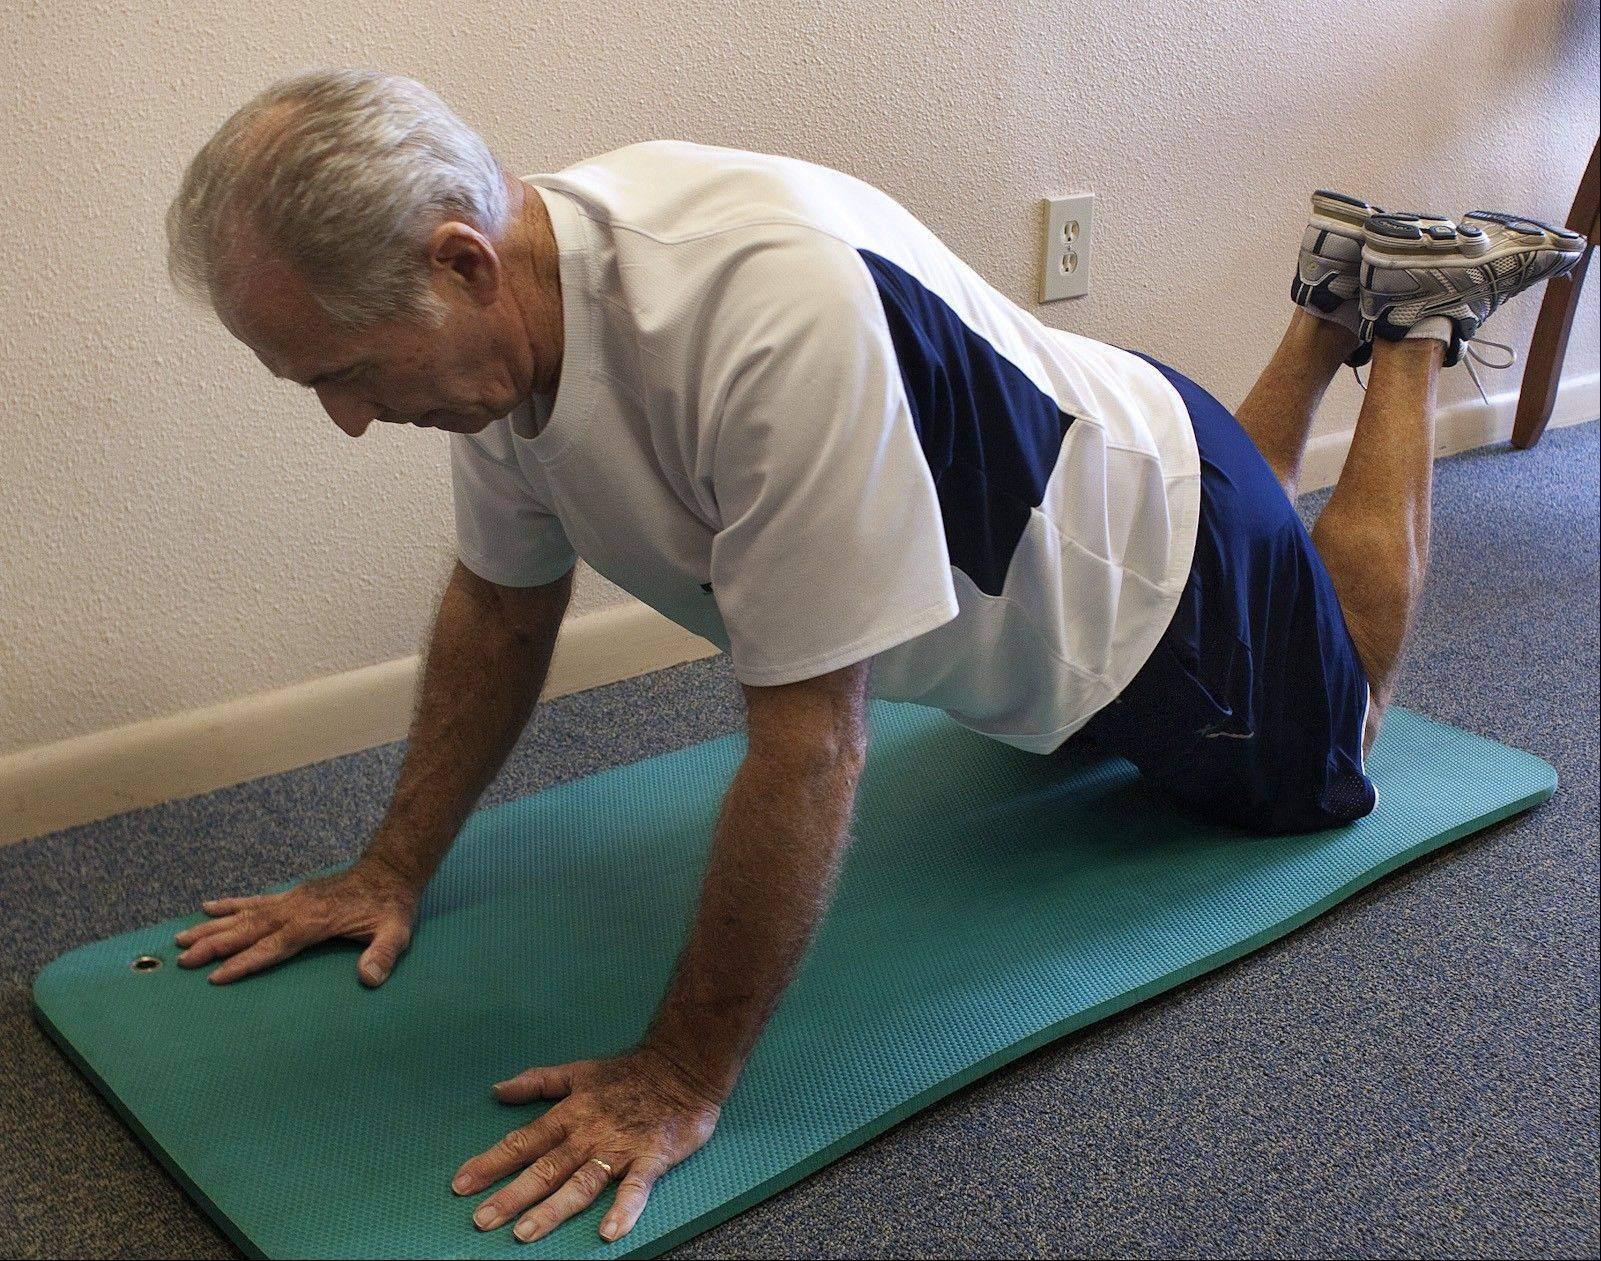 Bob Cole demonstrates position 1 of a modified push-up.